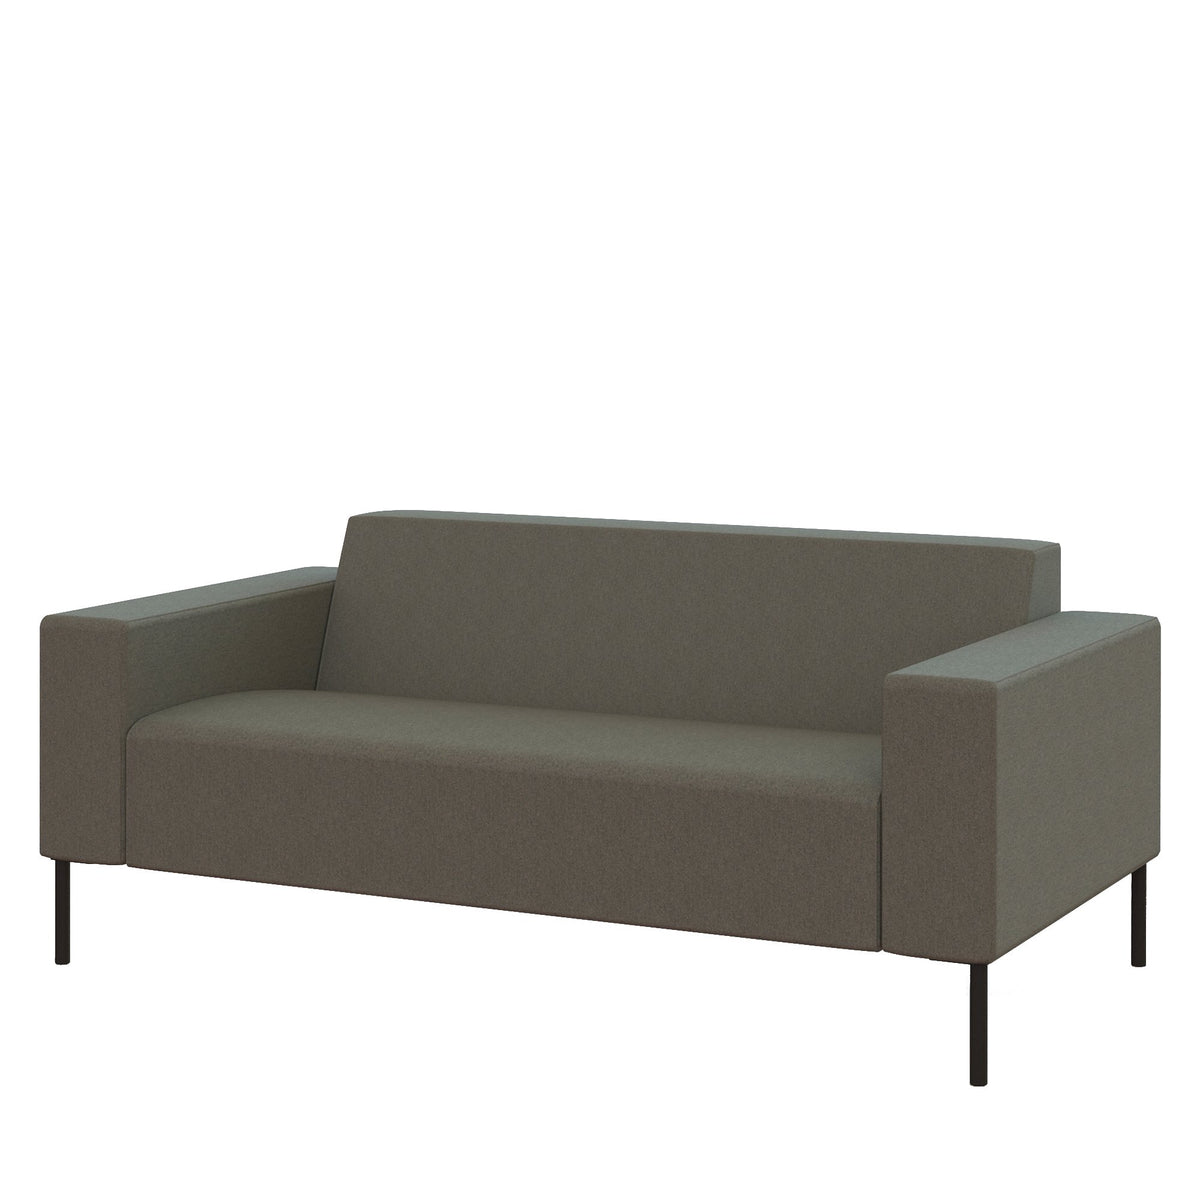 Hitch Mylius HM18 Origin Two Seat Sofa Black Legs Camden